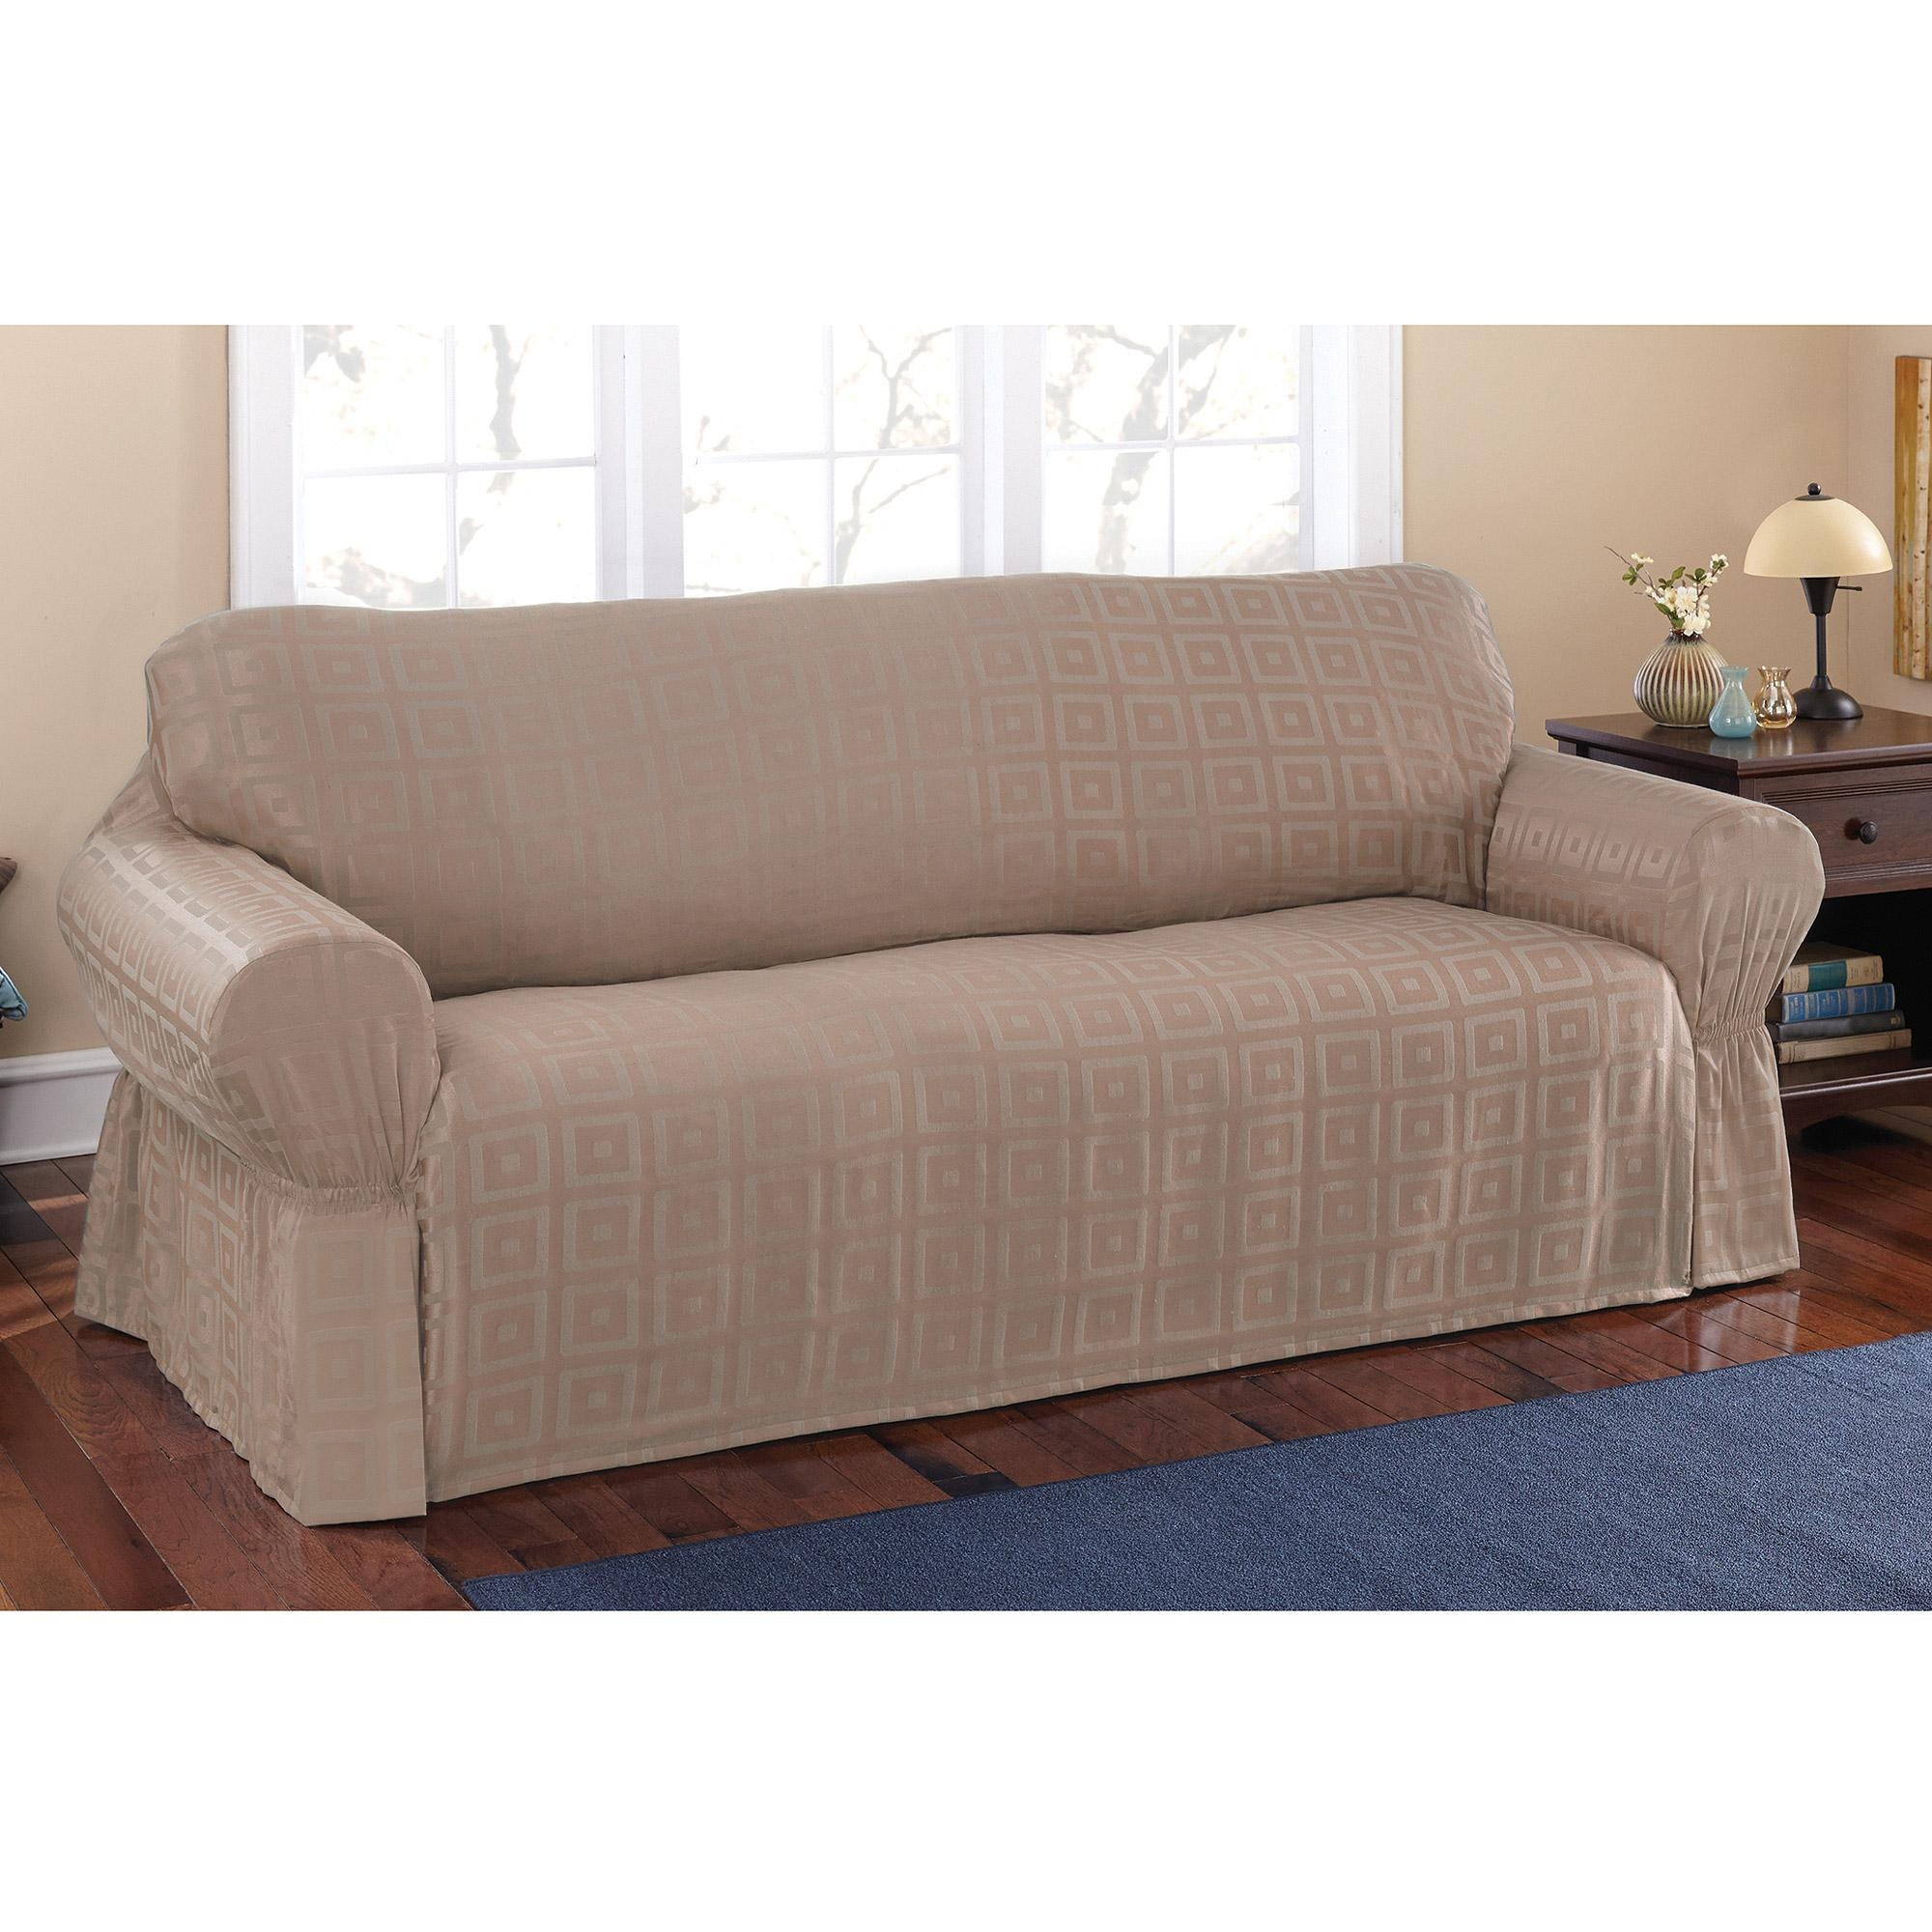 Sofas Center : Armless Sofa Couch Covers Leather Cover Walmart As For Armless Sofa Slipcovers (View 16 of 20)